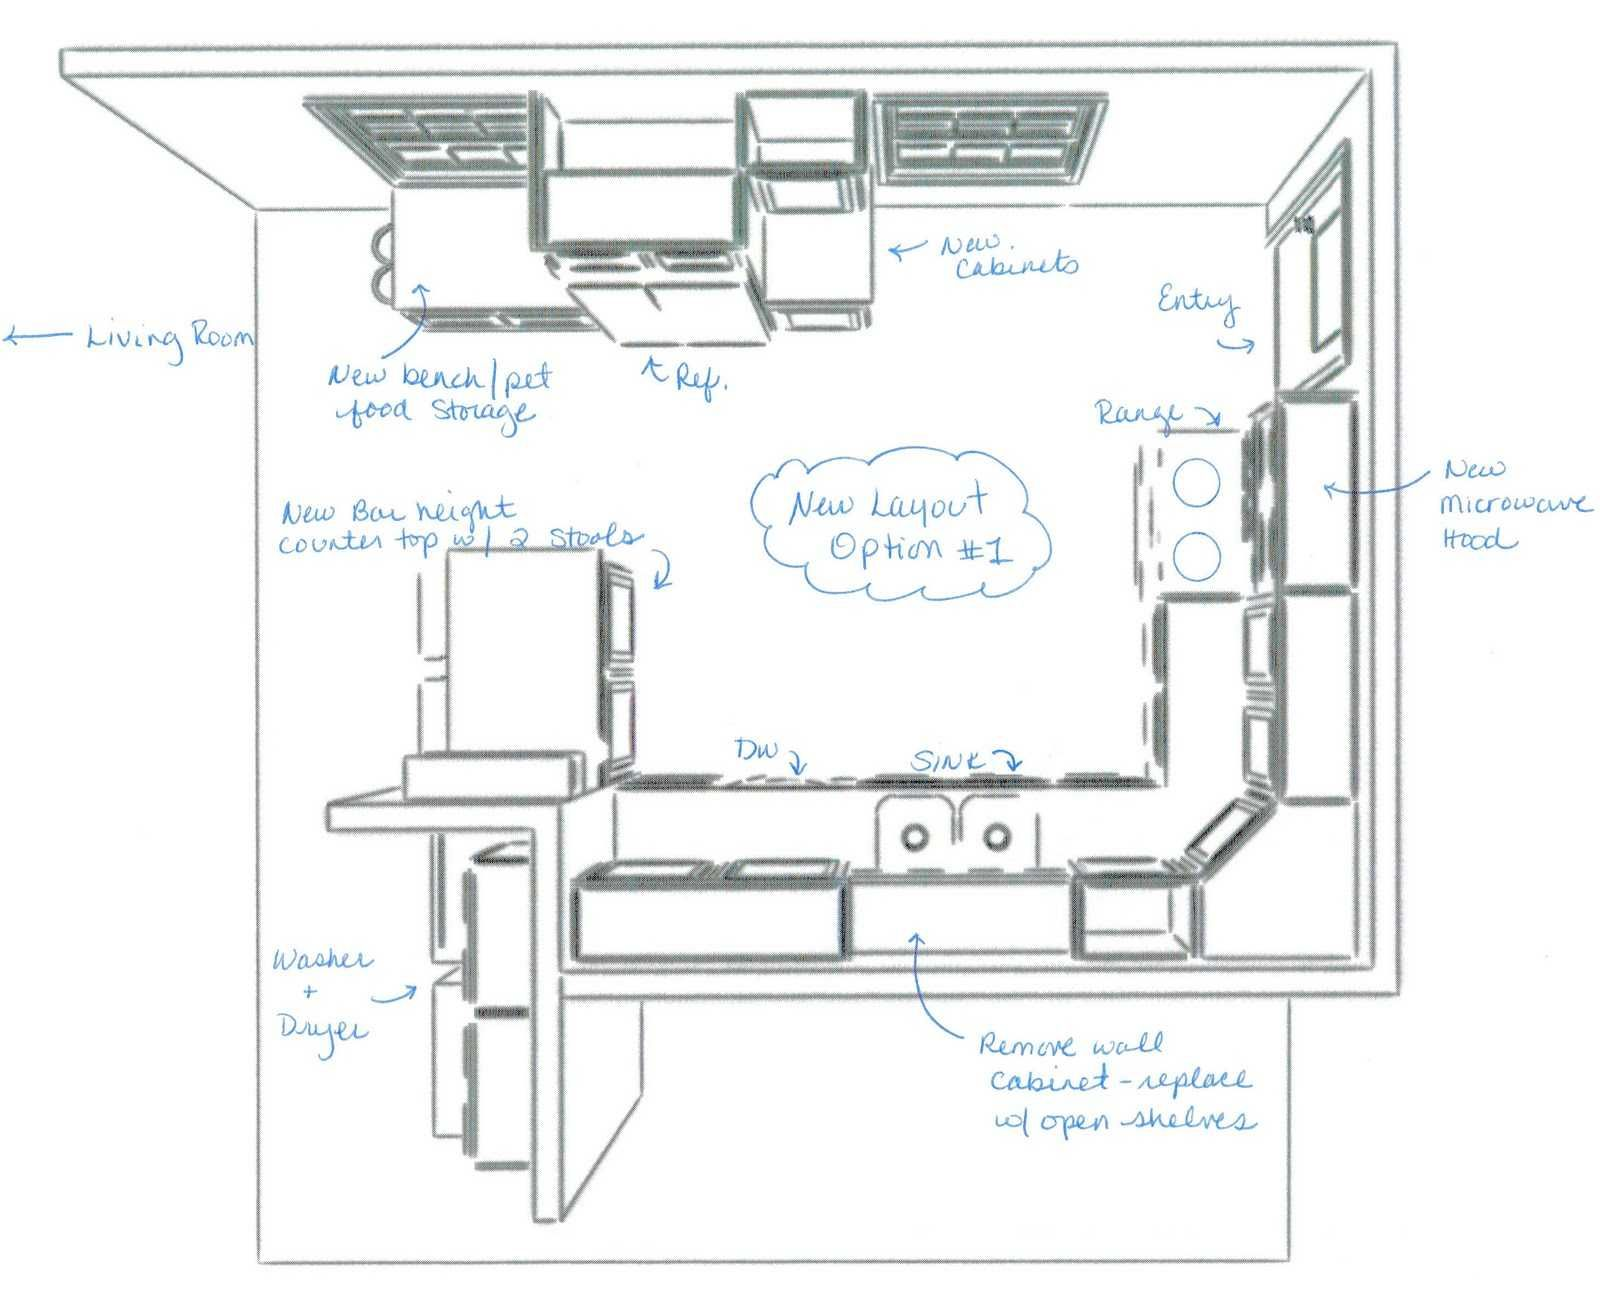 Interior Design Is The Process Of Improving The State Of An Internal Space Of Kitchen Cabinets Design Layout Small Kitchen Design Layout Kitchen Designs Layout Design own kitchen layout